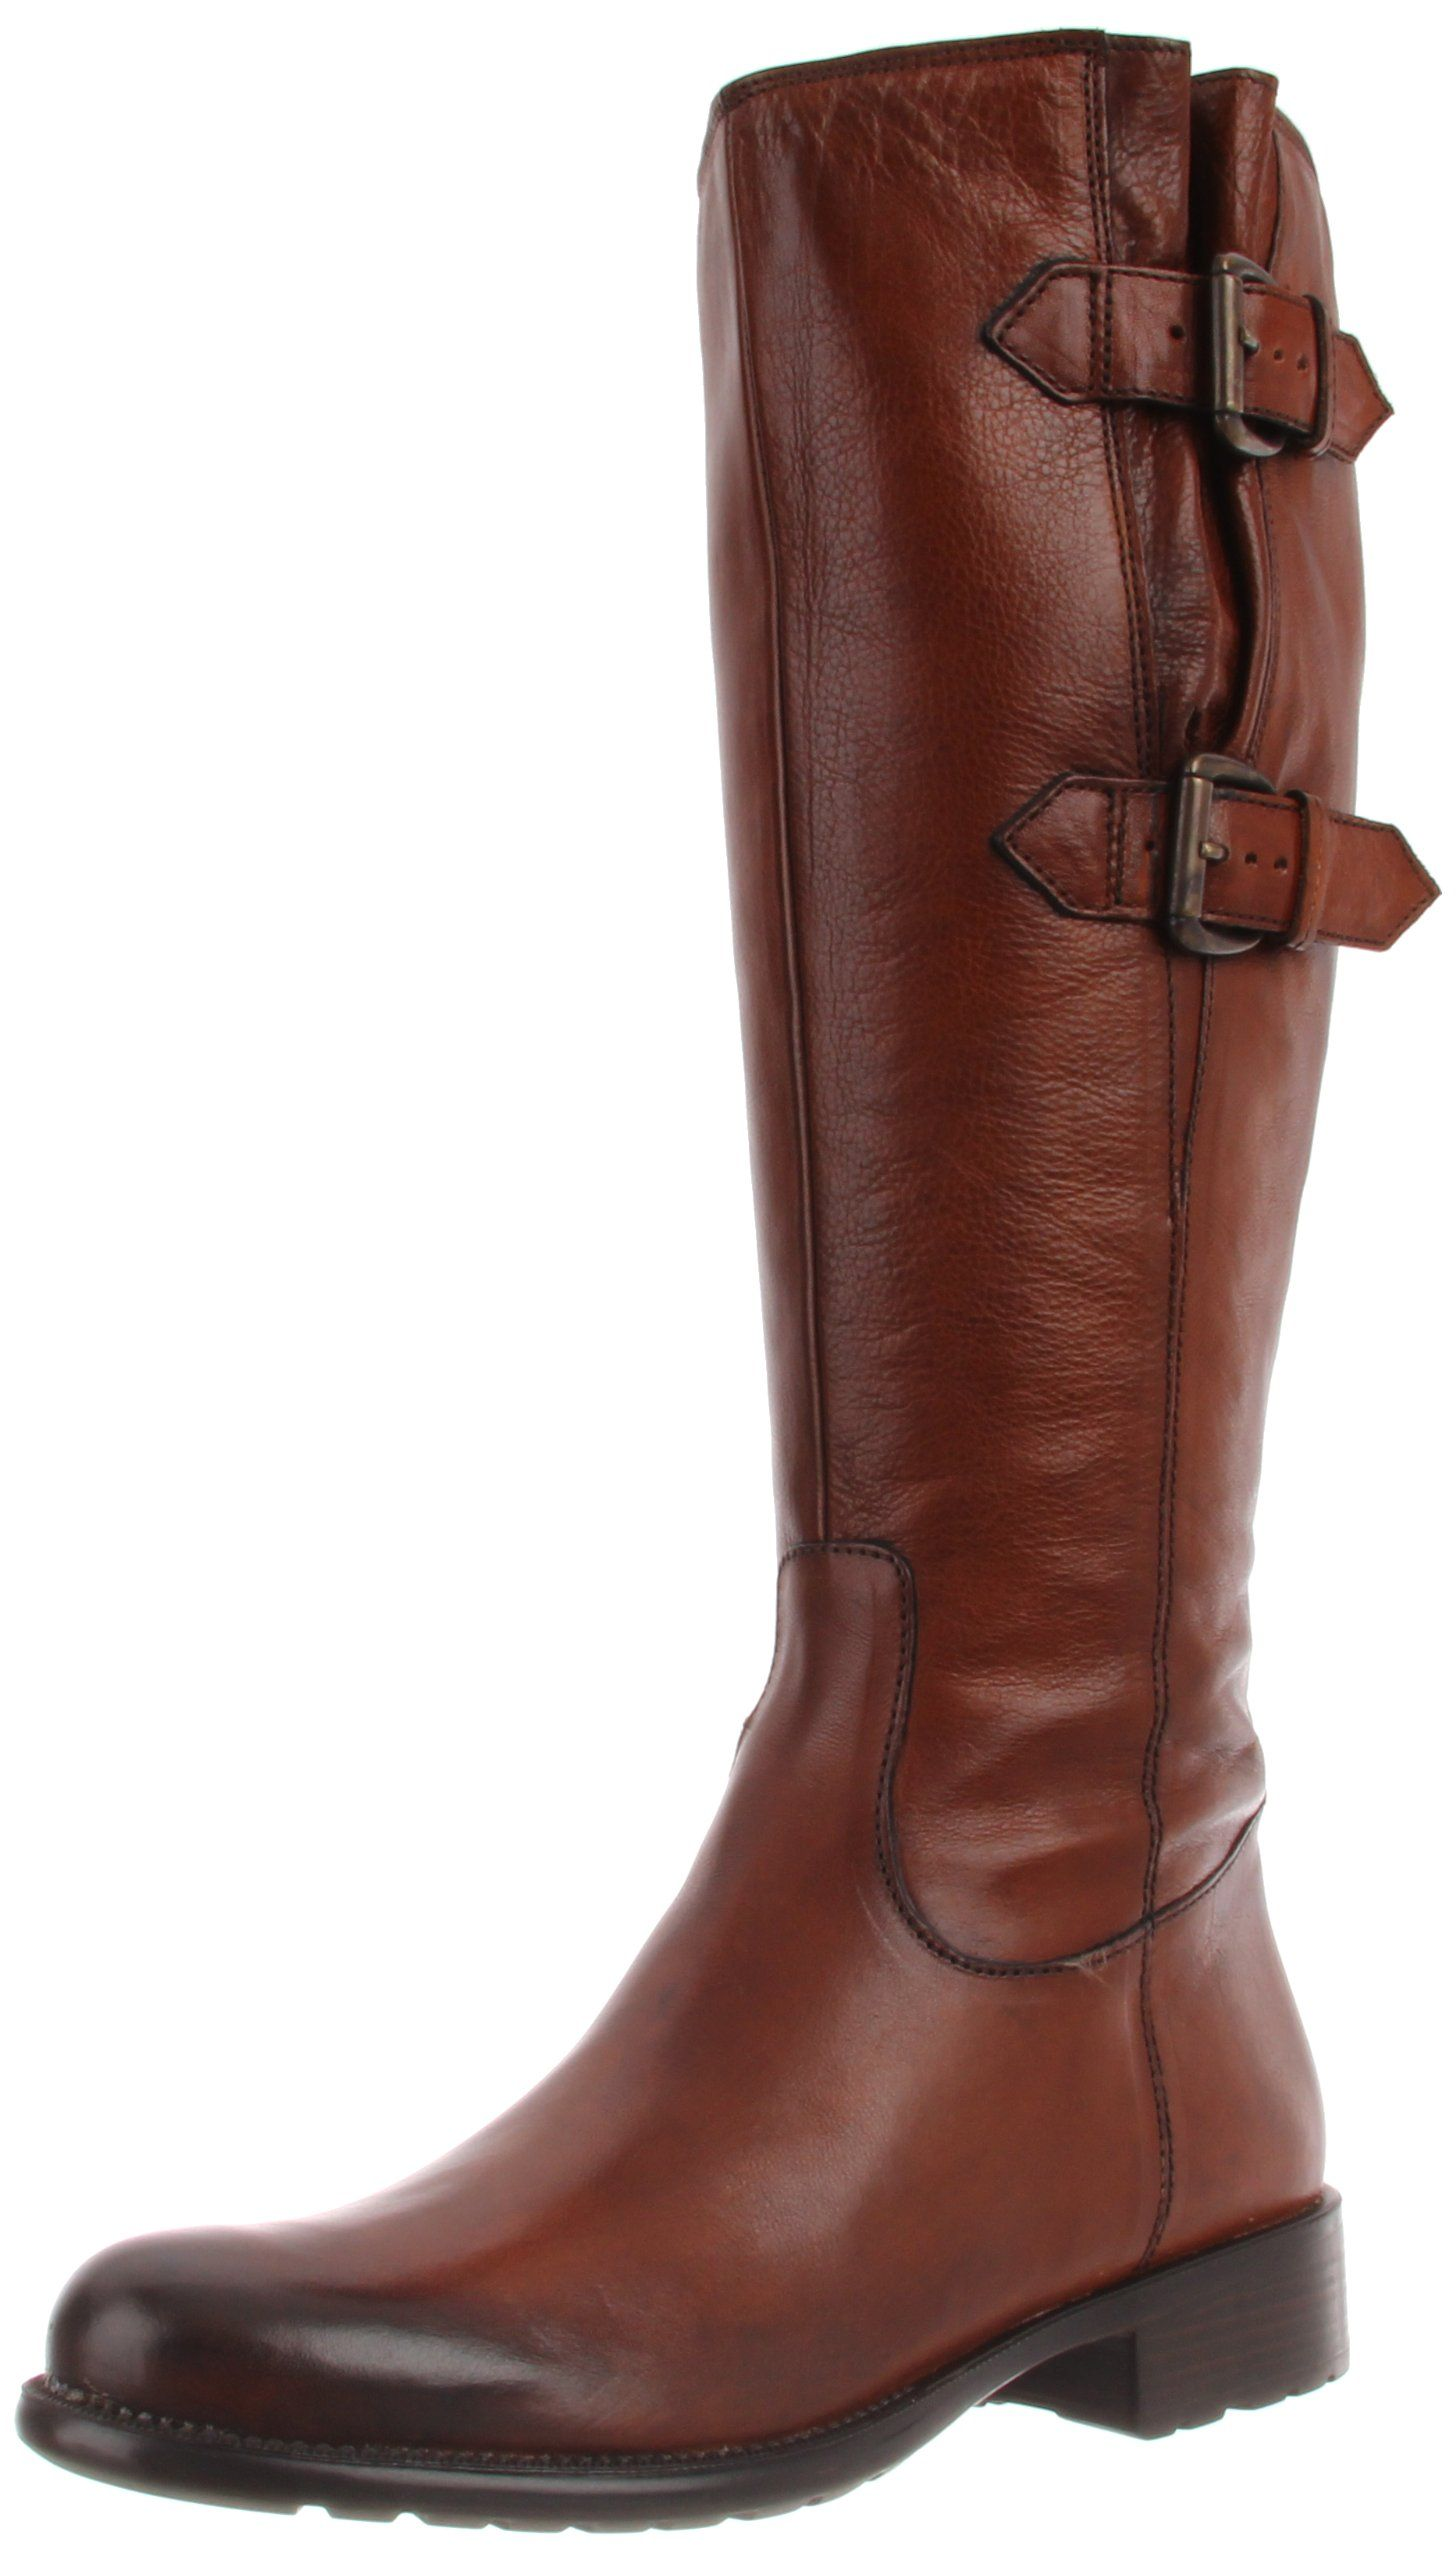 Amazon.com: Clarks Women's Mullen Spice Knee-High Boot: Clarks: Shoes